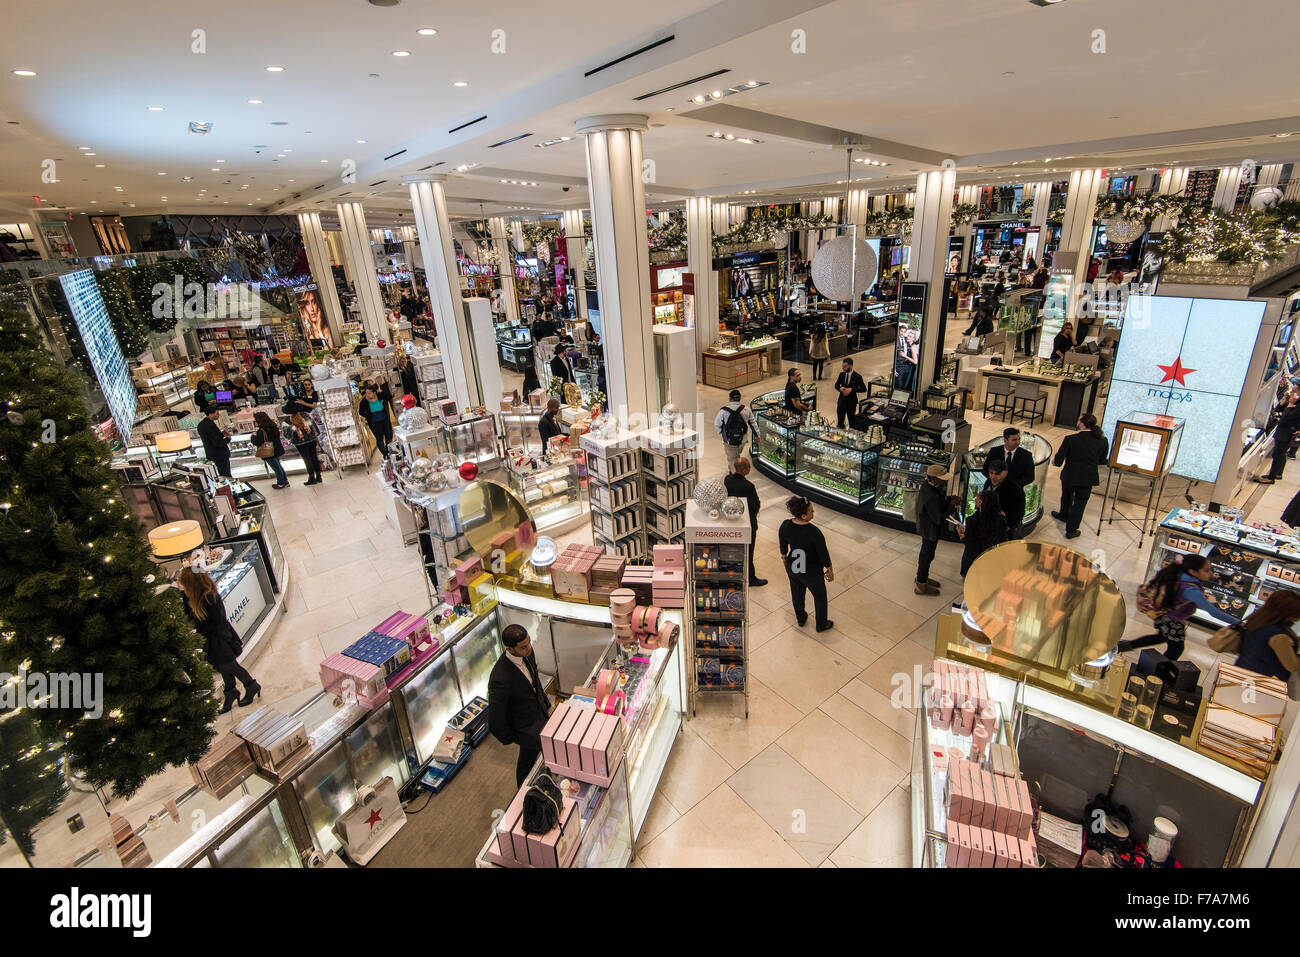 macy s department store herald square manhattan new york usa stock photo 90580006 alamy. Black Bedroom Furniture Sets. Home Design Ideas